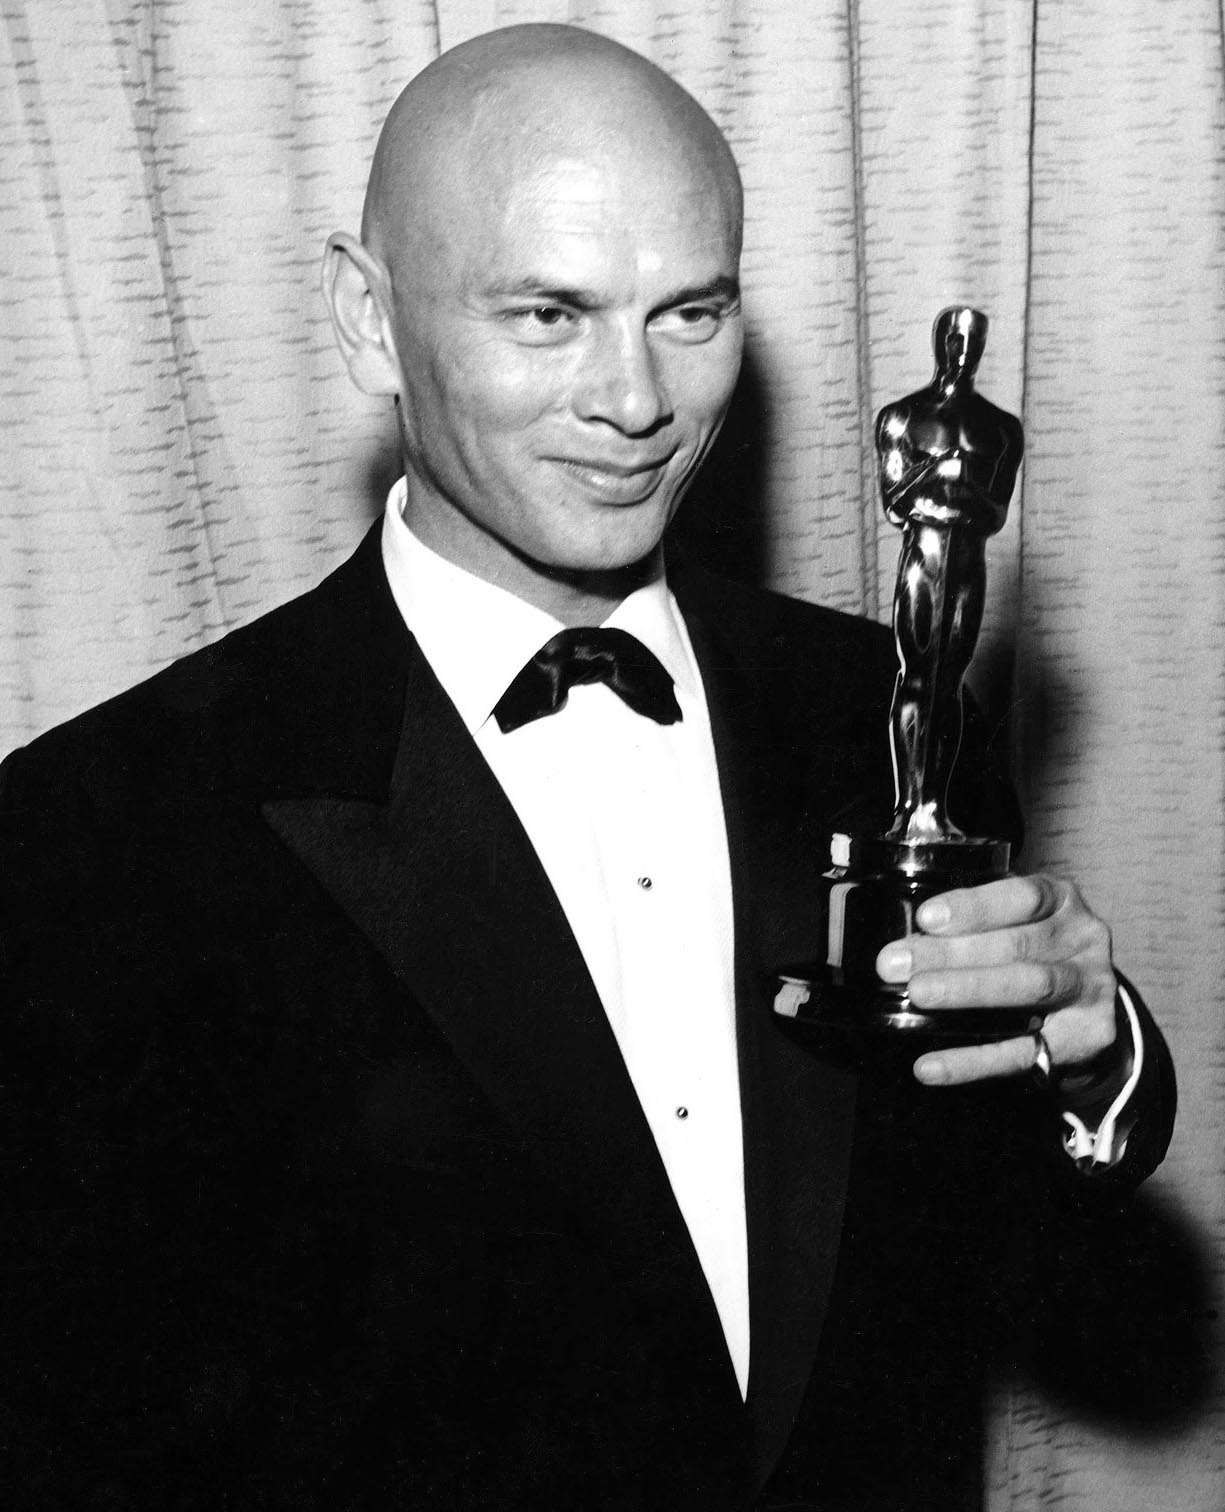 Yul Brynner's Potatoes in Sour Cream